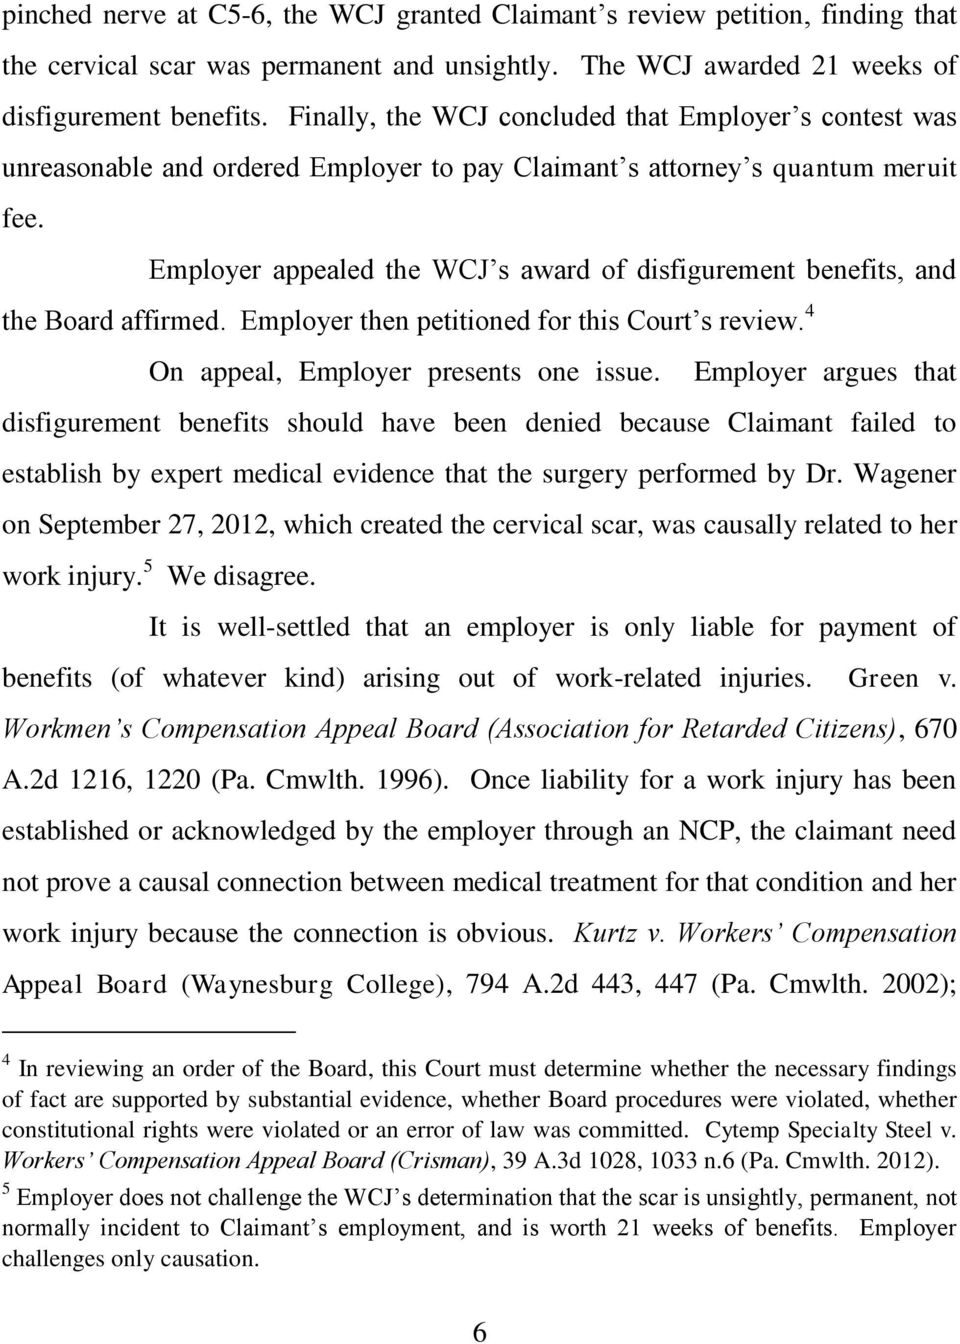 Employer appealed the WCJ s award of disfigurement benefits, and the Board affirmed. Employer then petitioned for this Court s review. 4 On appeal, Employer presents one issue.